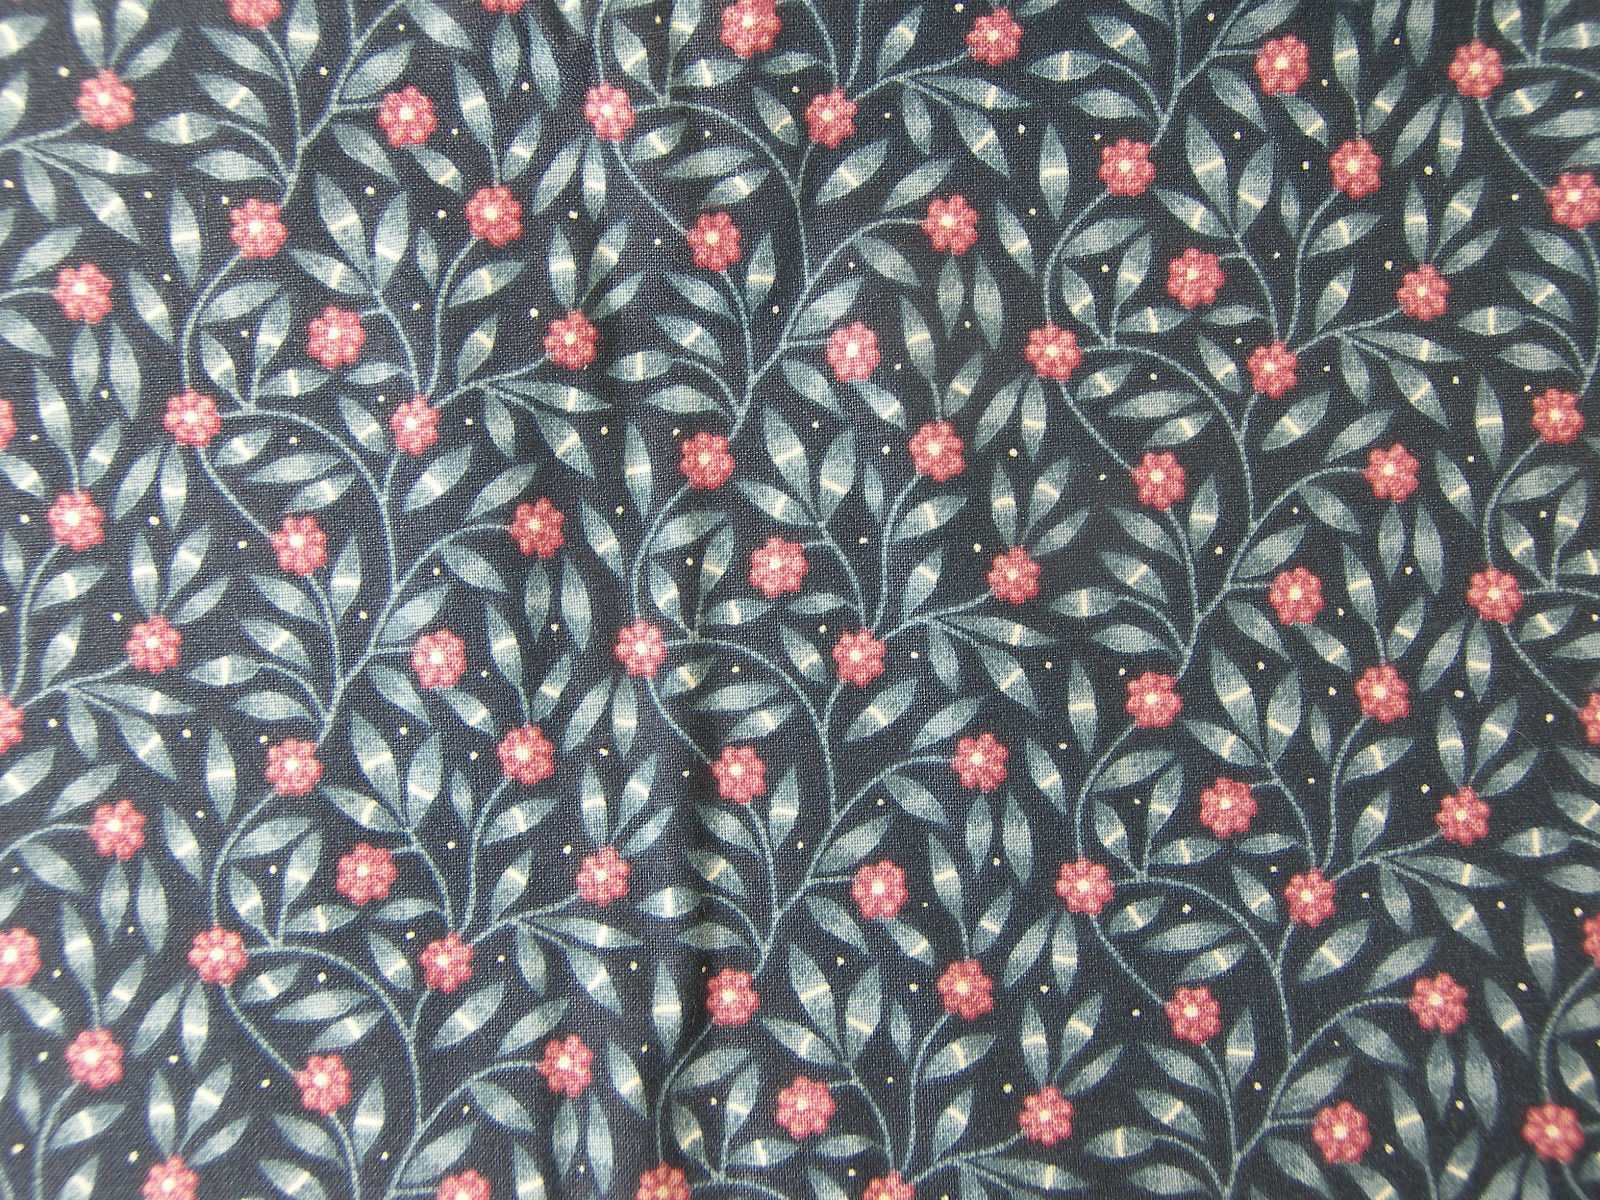 """COTTON FABRIC PIECE Blue and Red Flower Print 45"""" Wide x 1.5 Yards Long NEW"""